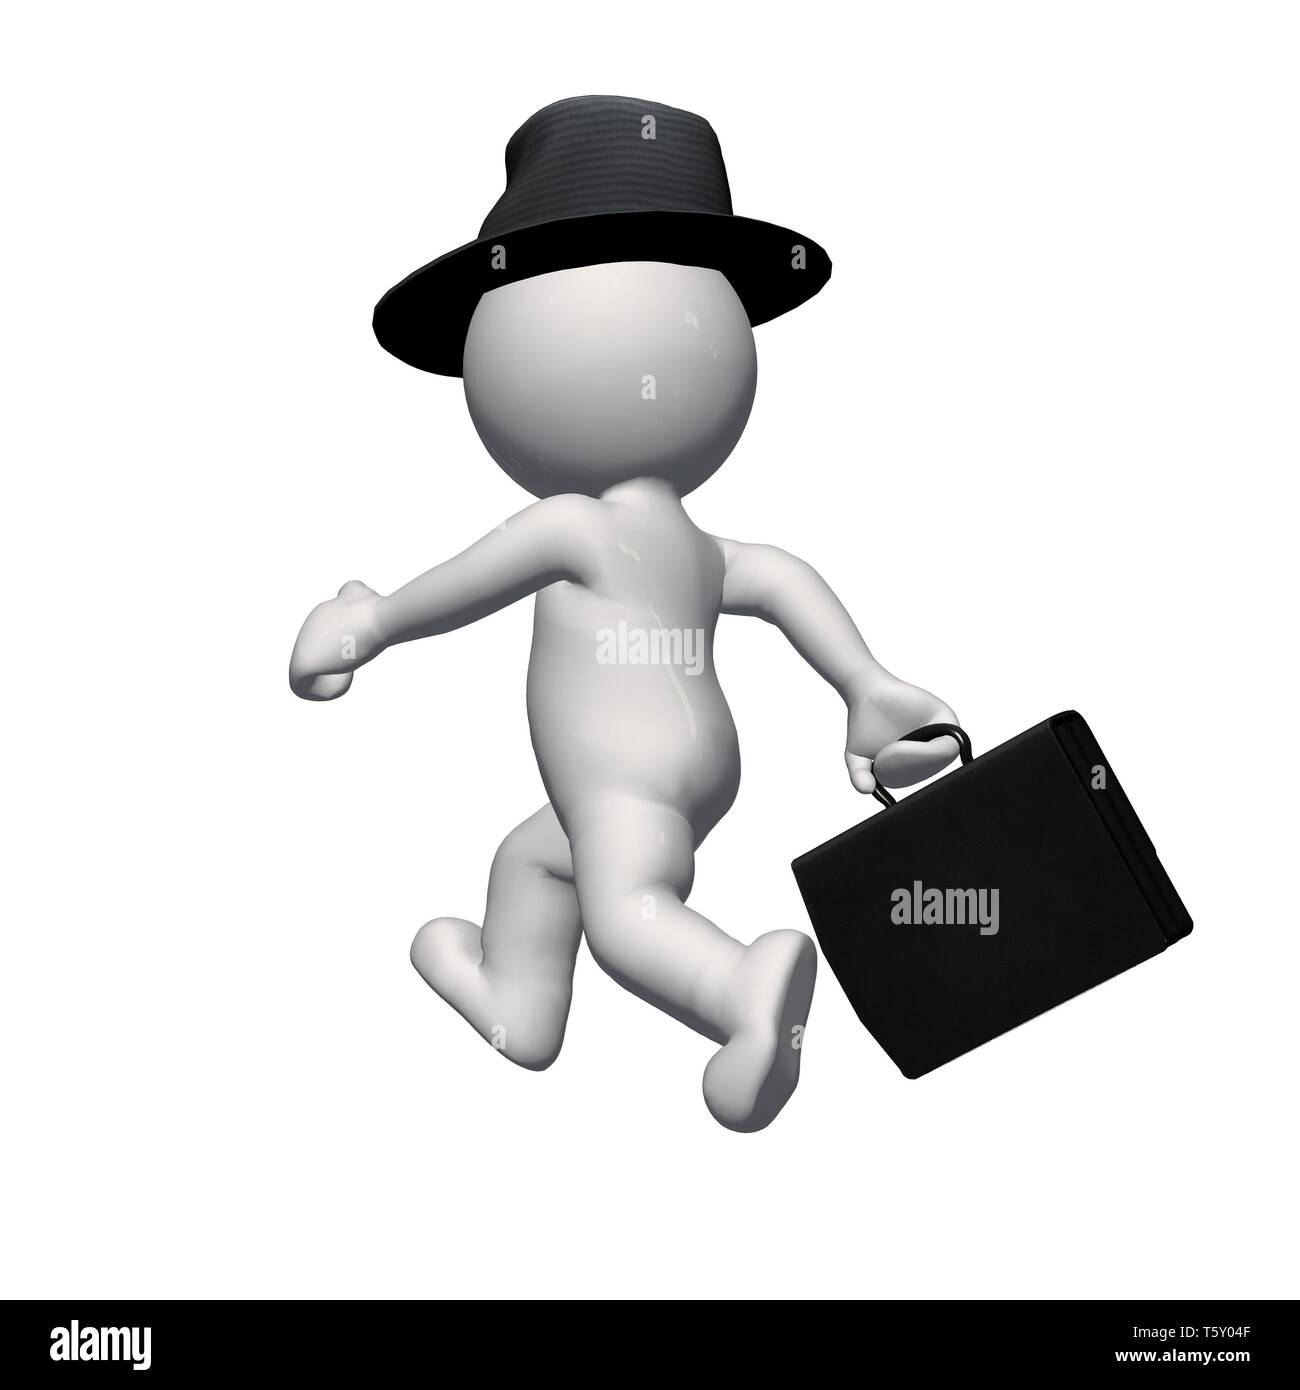 3D  People - business man with hat and briefcase - isolated on white background - Stock Image